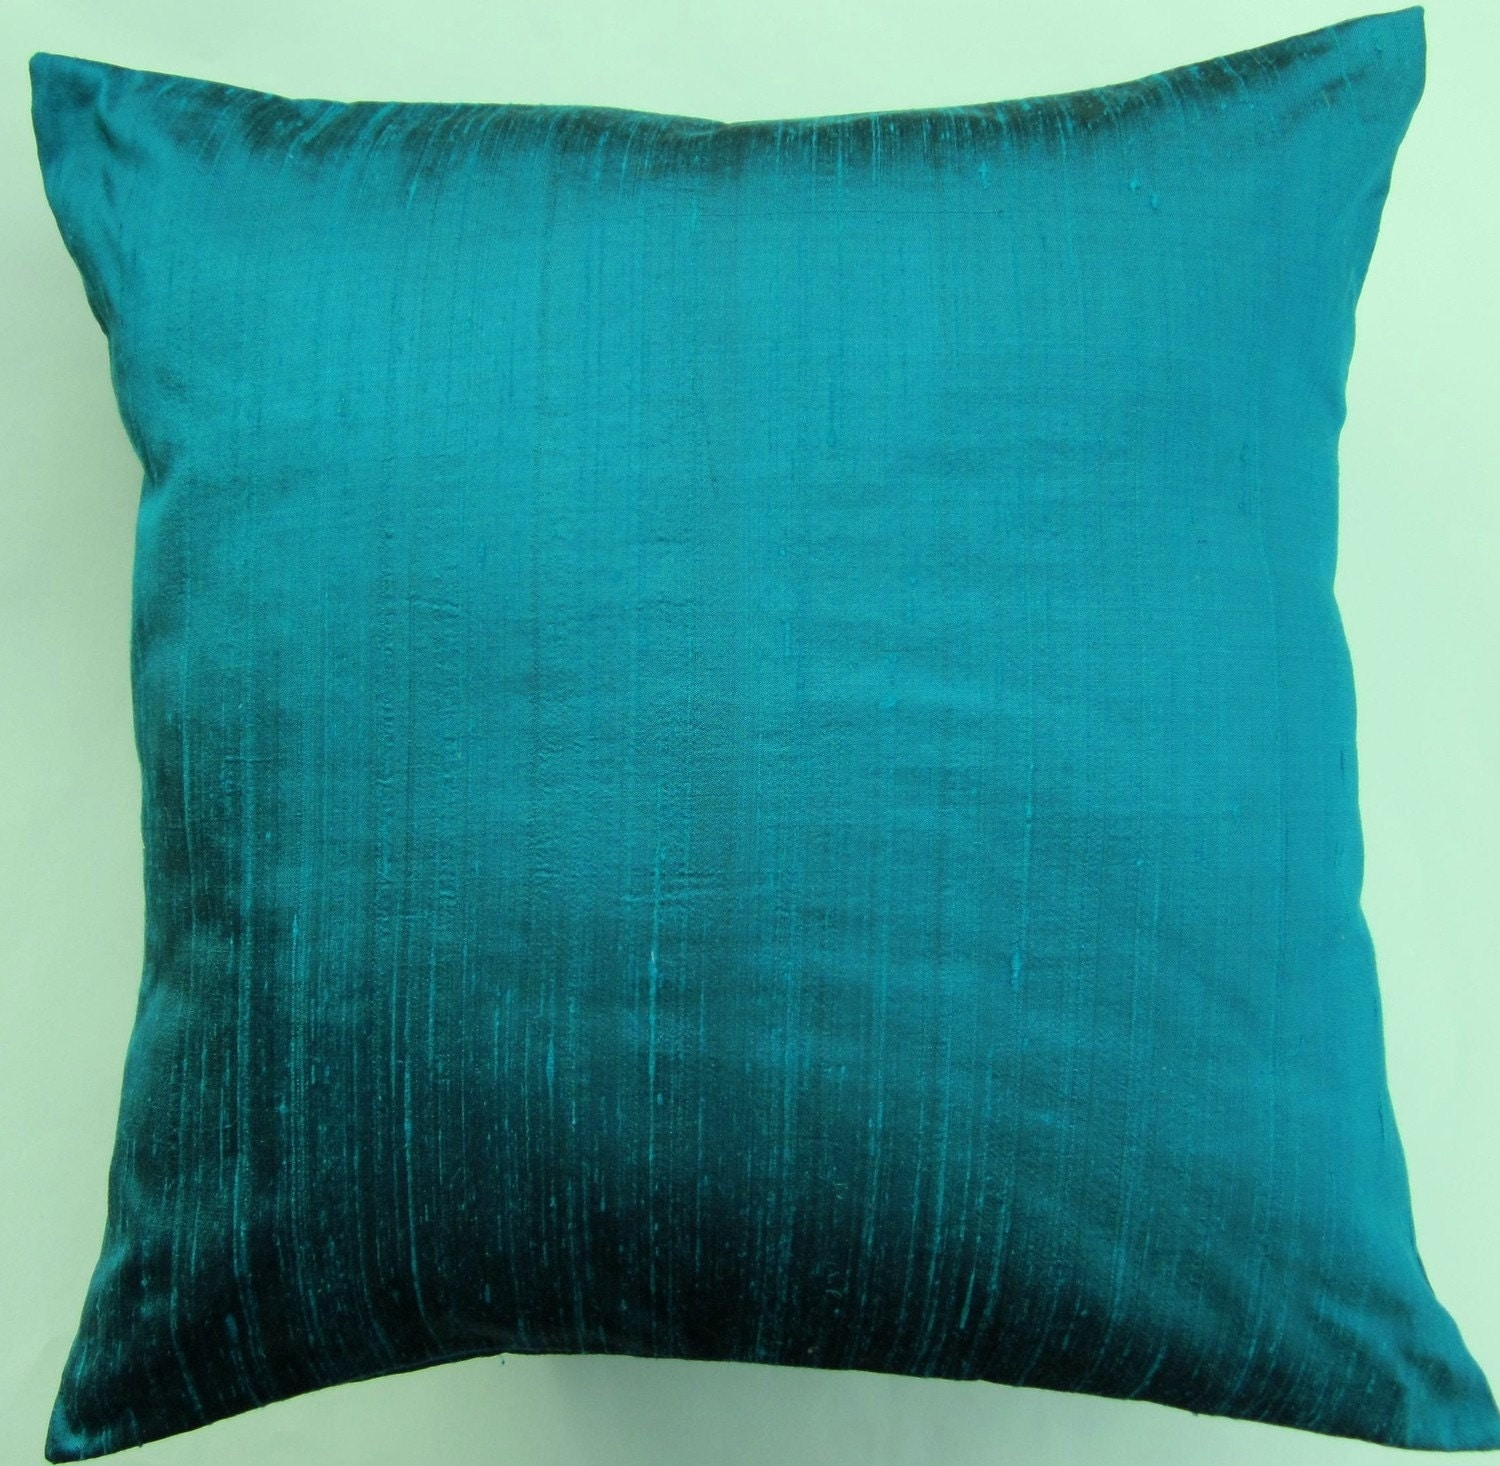 Throw Pillow Turquoise : Turquoise Pillow Aquamarine Silk Throw Pillow Cover Deep